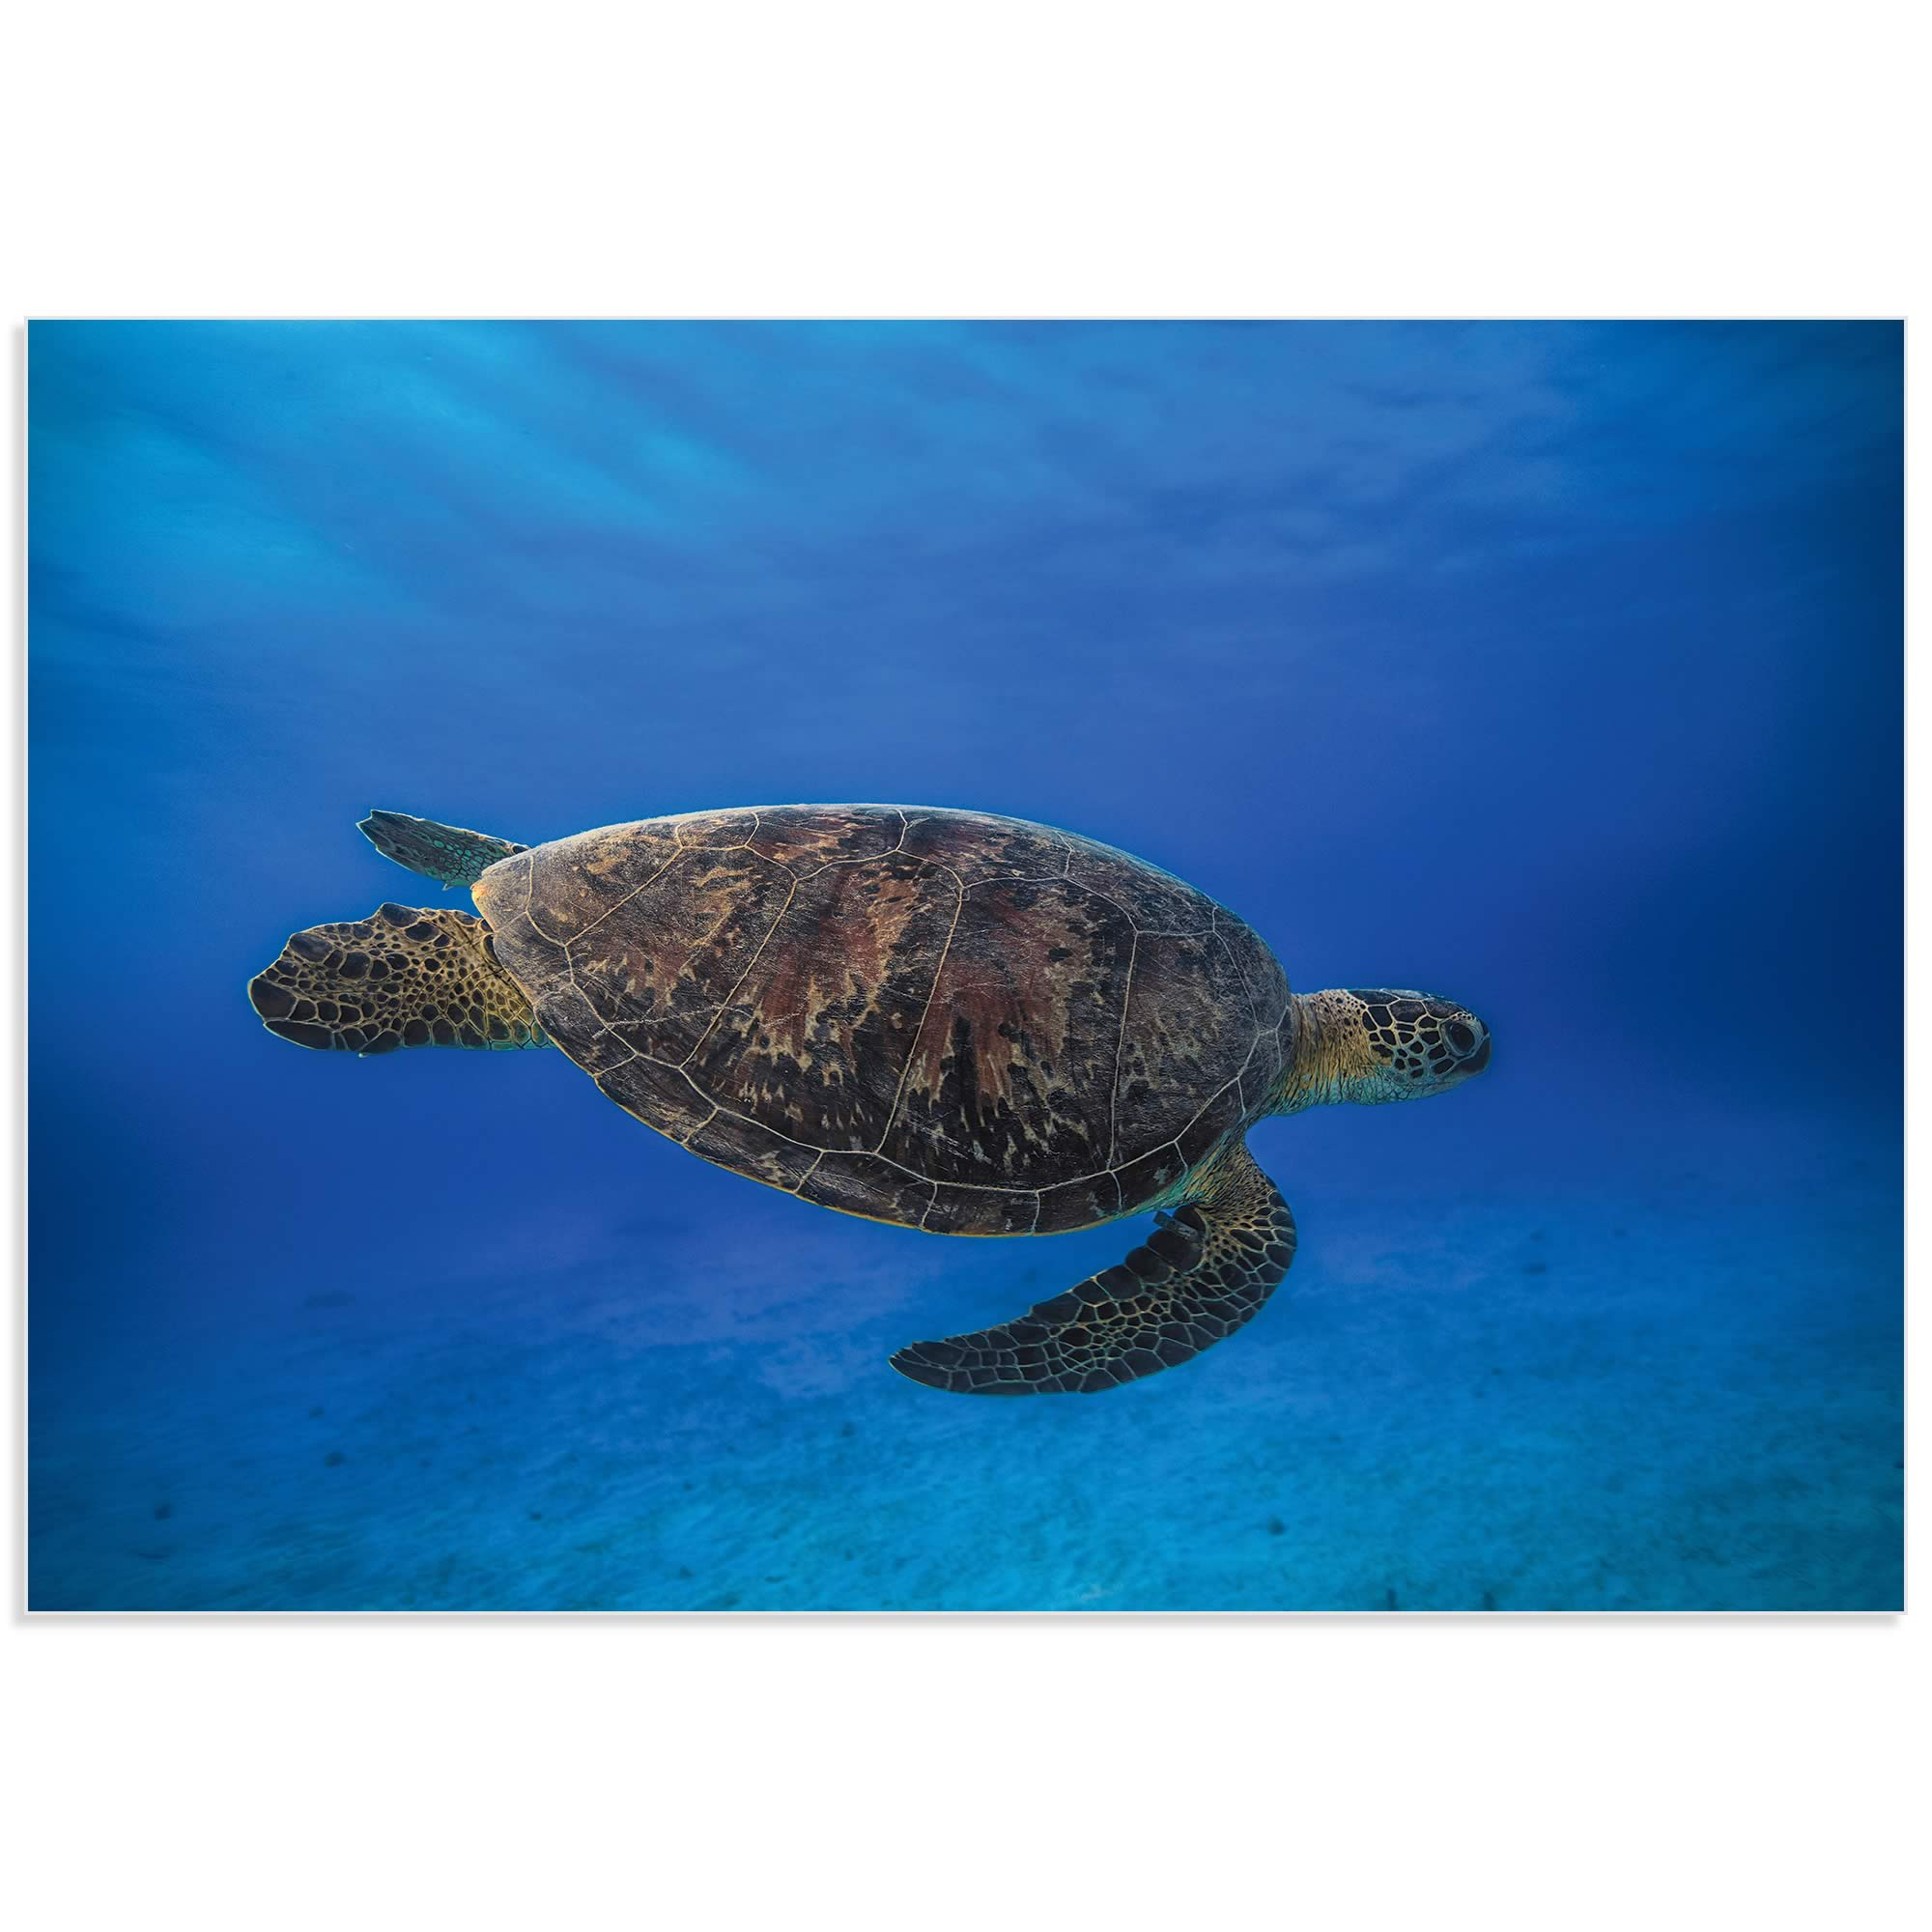 Green Turtle in the Blue by Barathieu Gabriel - Sea Turtle Art on Metal or Acrylic - Alternate View 2